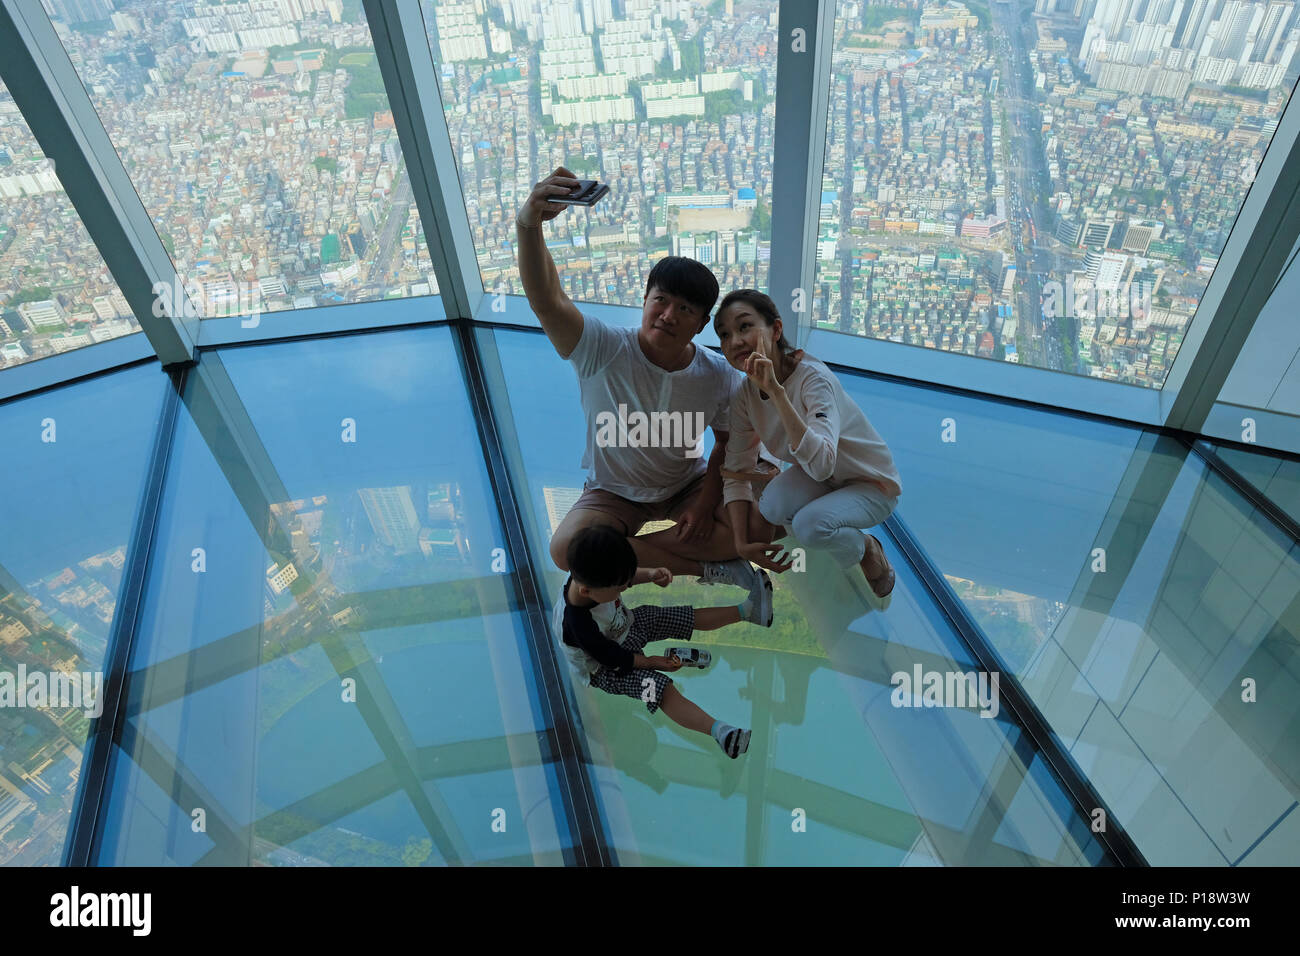 A Korean Family Taking Selfie Photo At The Glass Floor Observatory